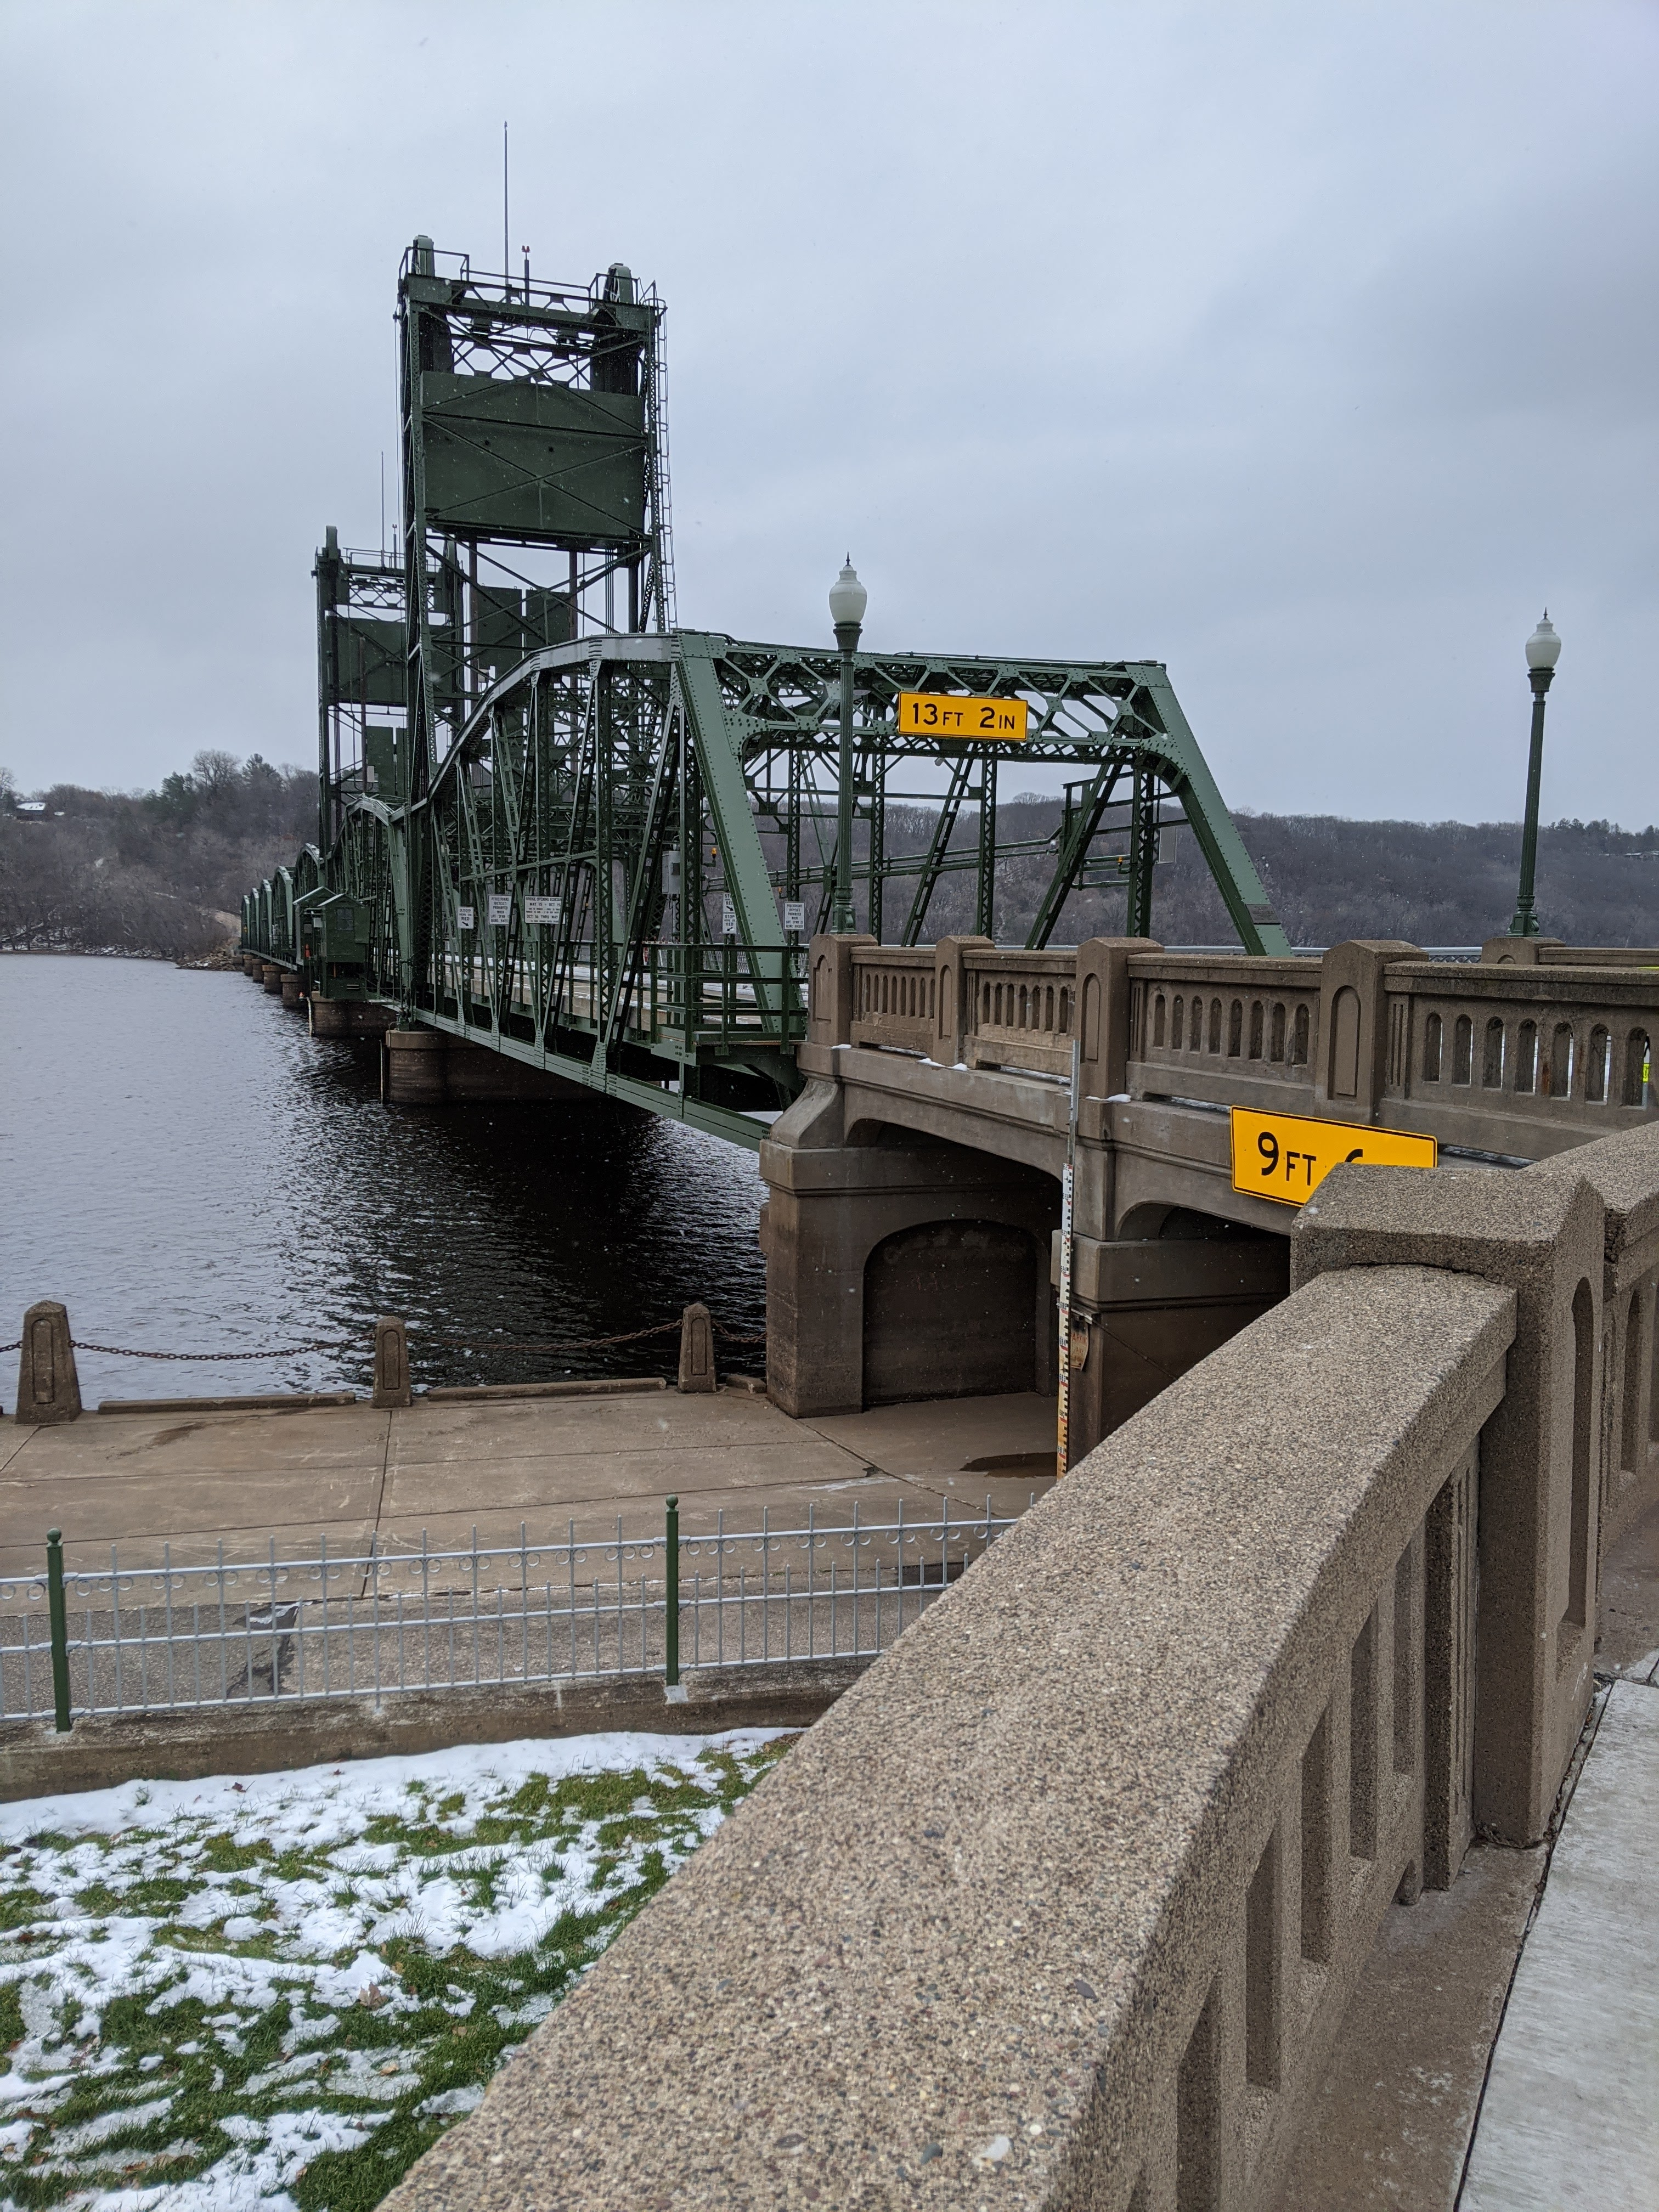 The Lift Bridge was the main crossing in this area from 1931 -2017.